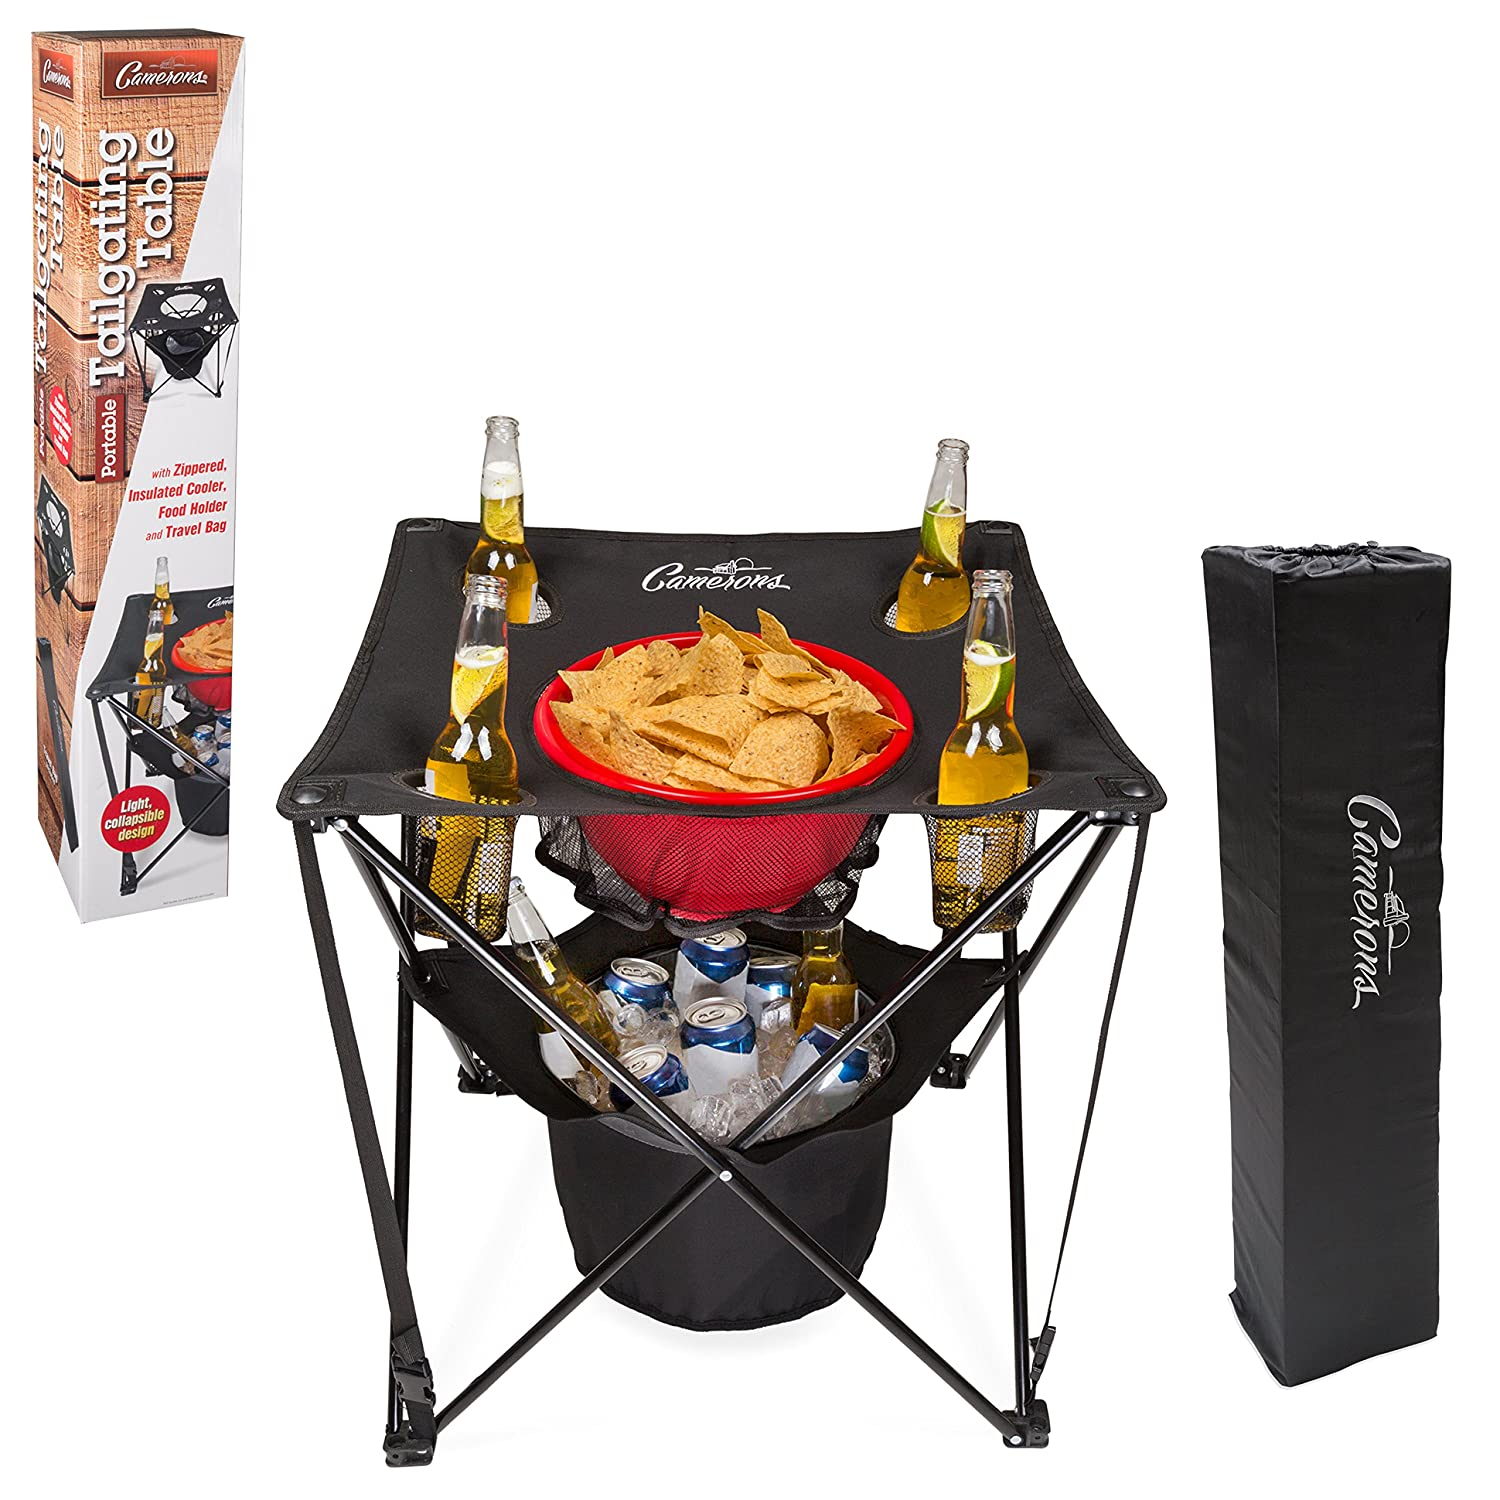 Camerons Products Tailgating Table- Collapsible Folding Camping Table with Insulated Cooler, Food Basket and Travel Bag for Barbecue, Picnic Tailgate